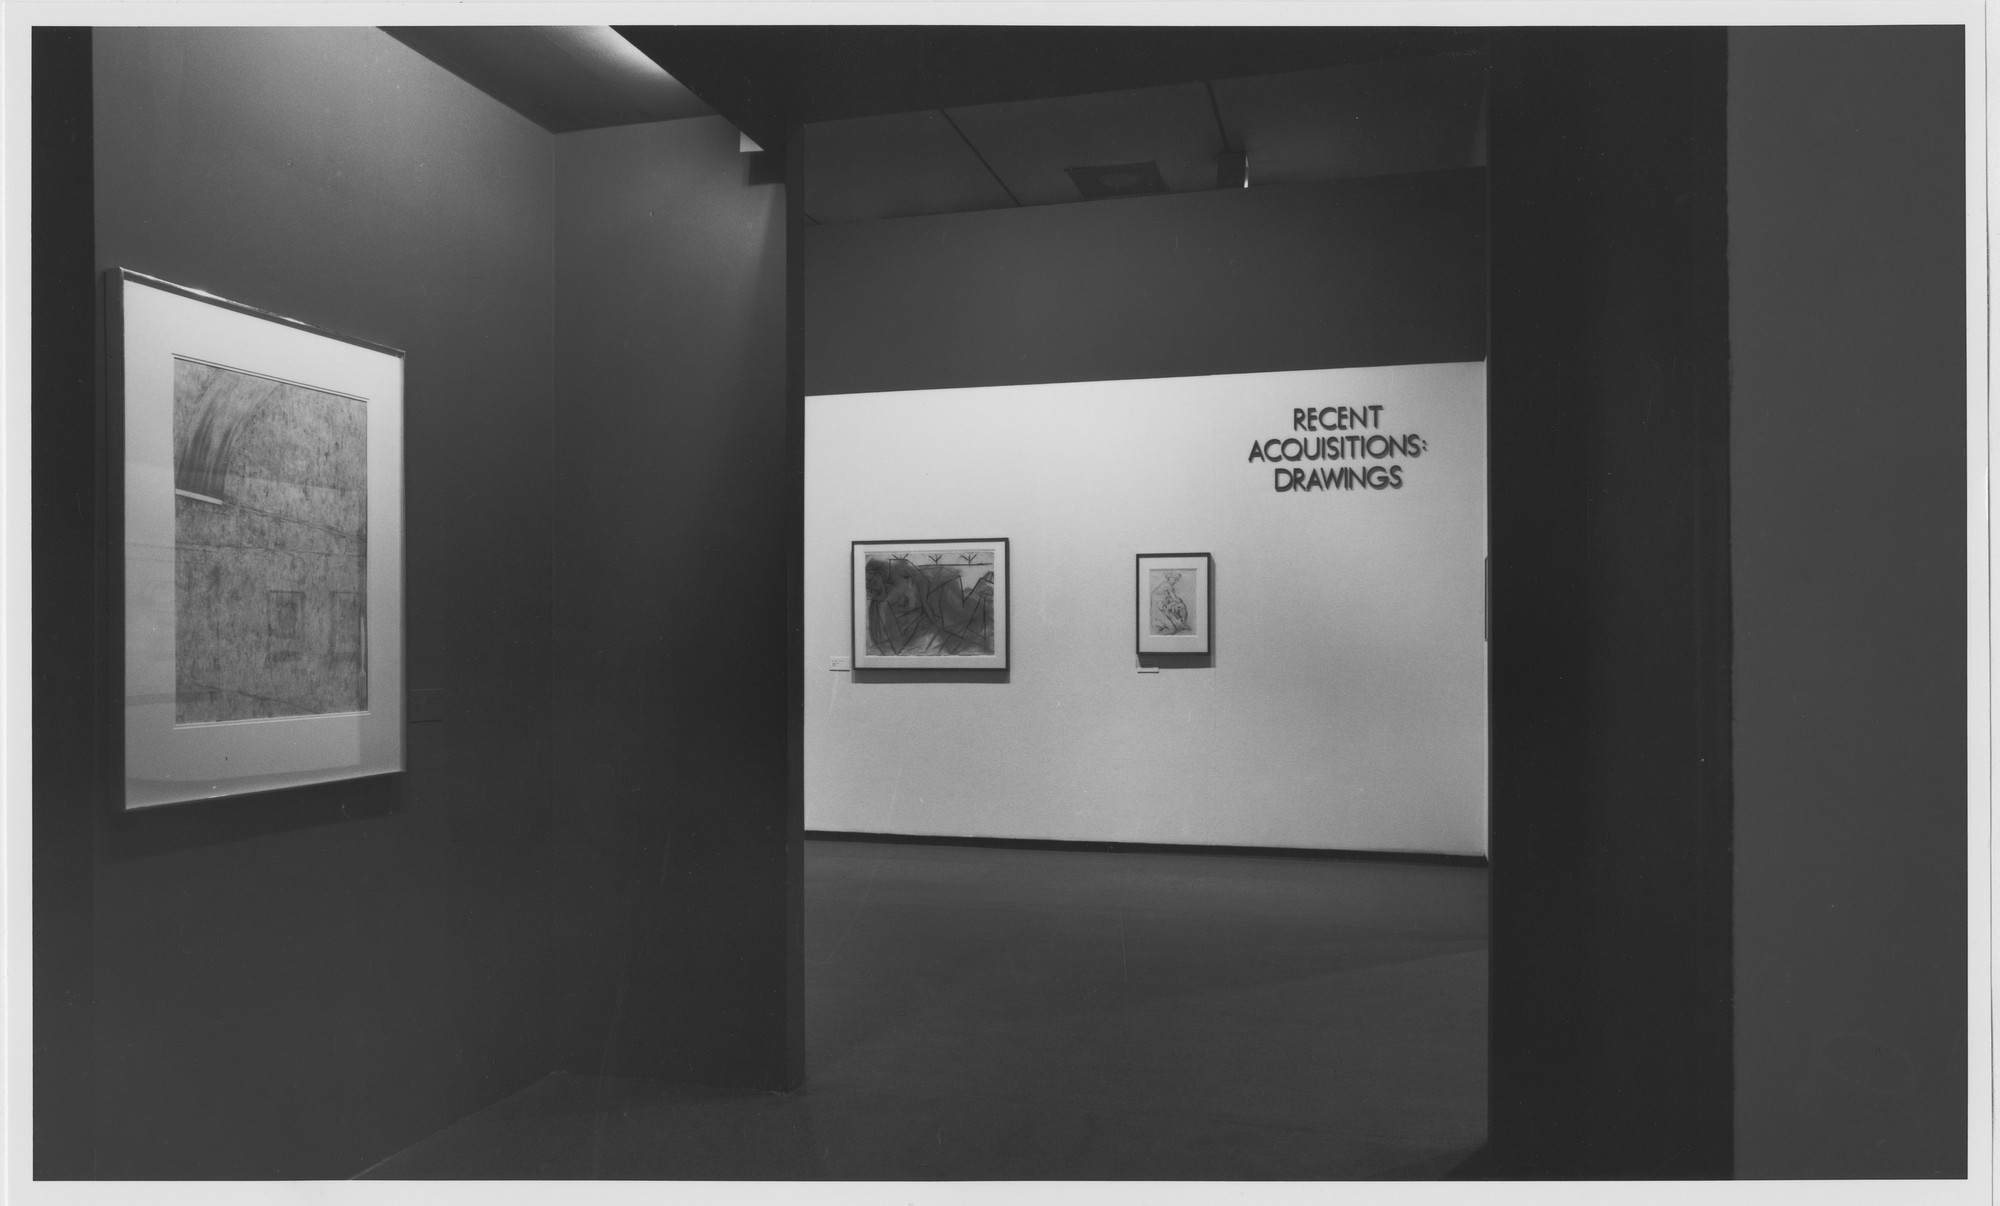 "Installation view of the exhibition, ""Recent Acquisitions: Drawing"" March 19, 1981–June 2, 1981. Photographic Archive. The Museum of Modern Art Archives, New York. IN1304.1. Photograph by Mali Olatunji."